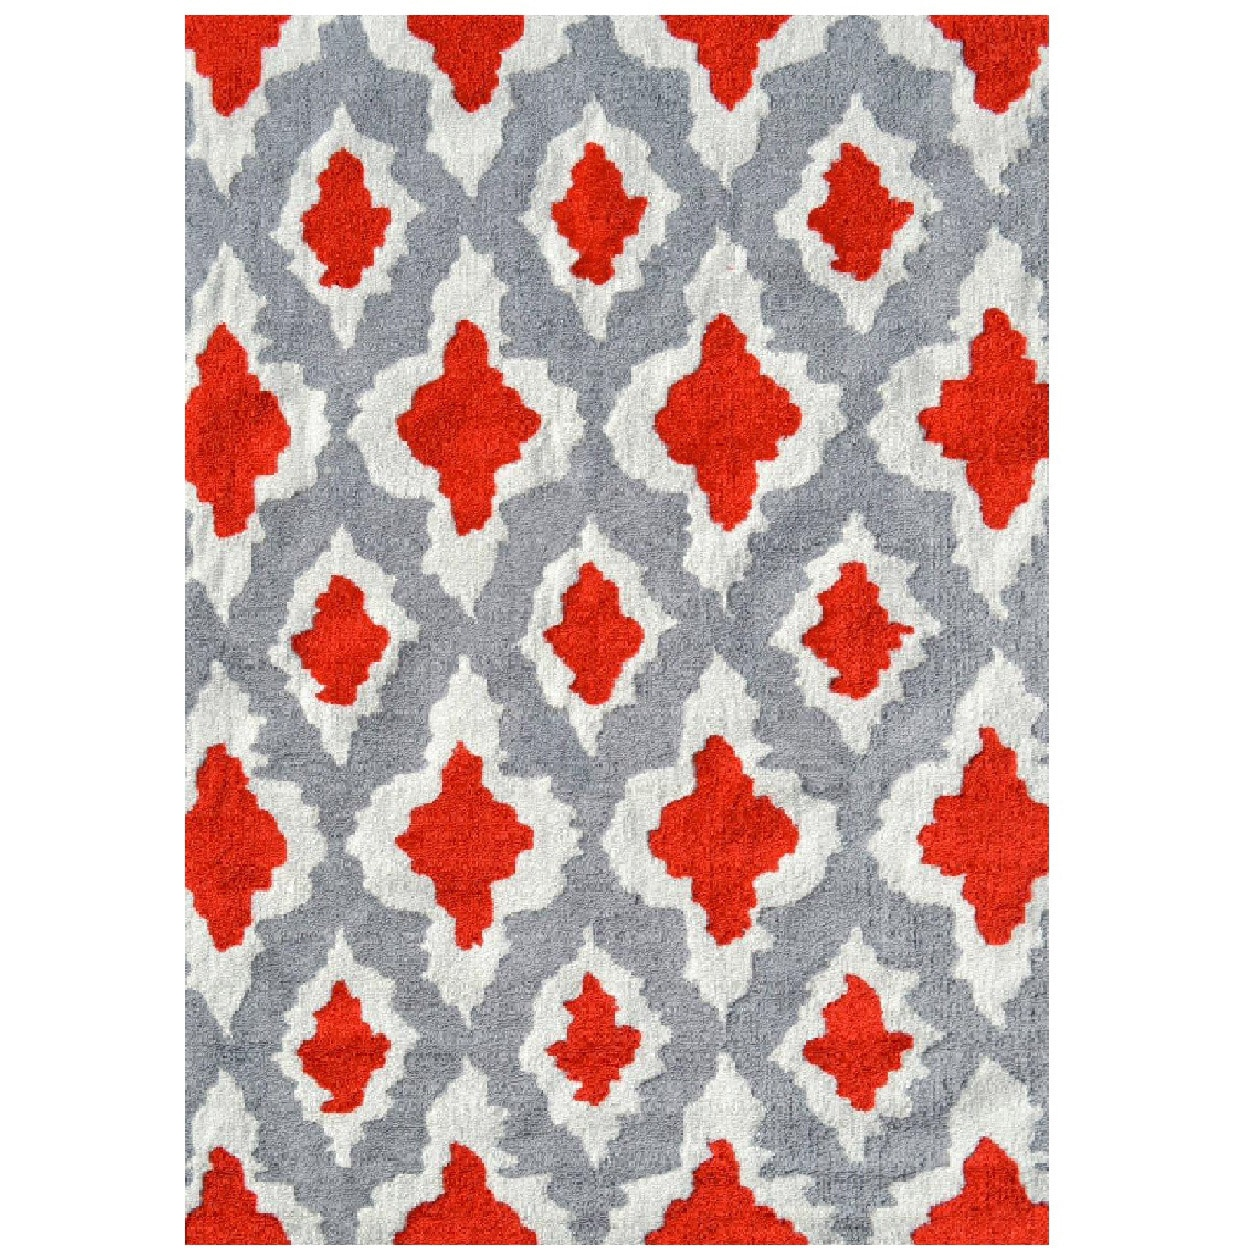 Rug Market Ethnic Grey/Red UV Poly Area Rug (5' x 7') (Et...